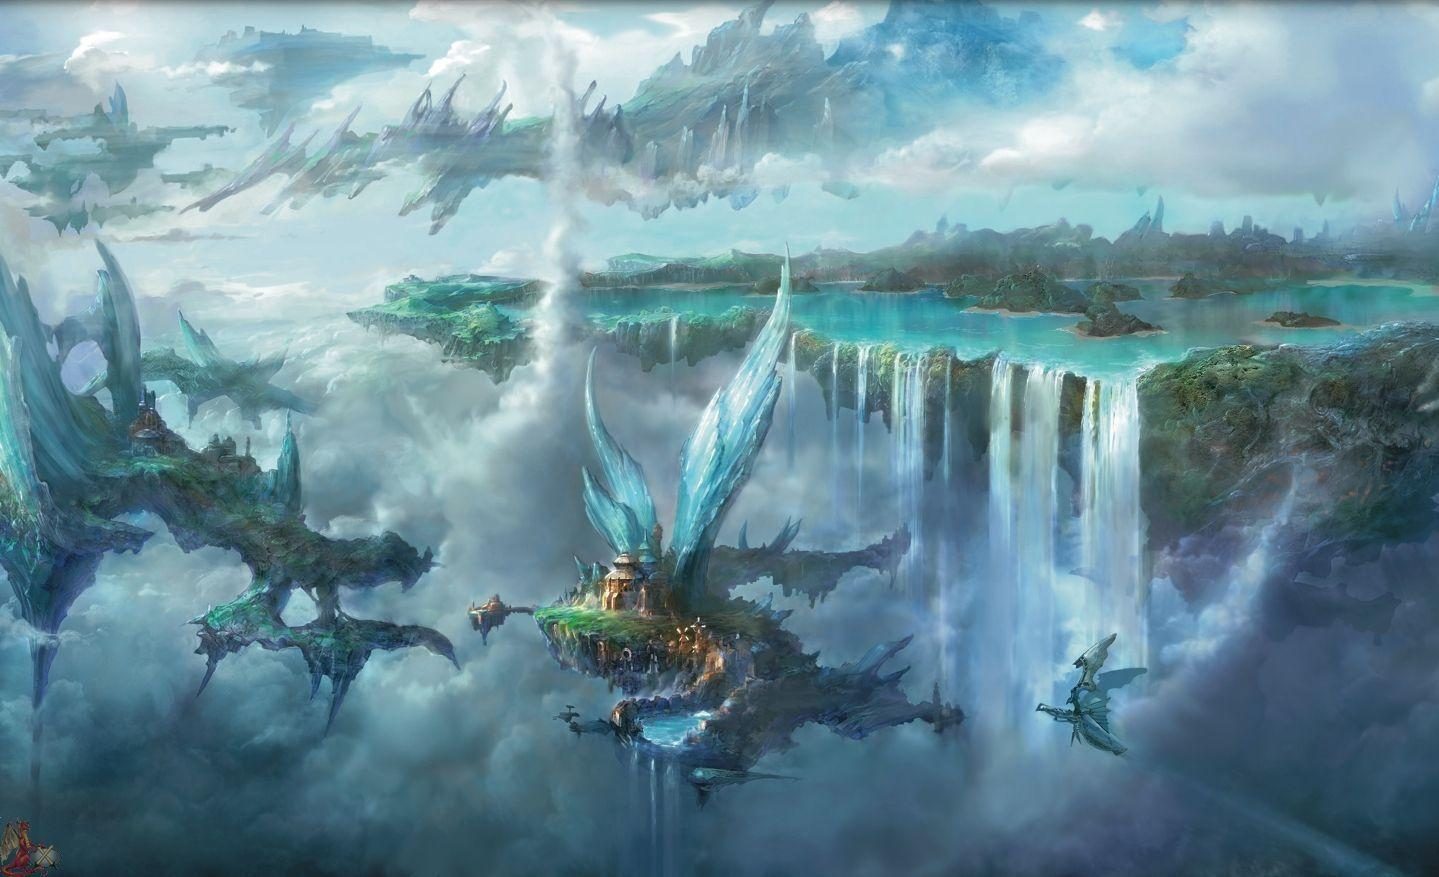 Stunning Hd Fantasy Gaming Desktop Wallpapers: HD Final Fantasy Wallpapers